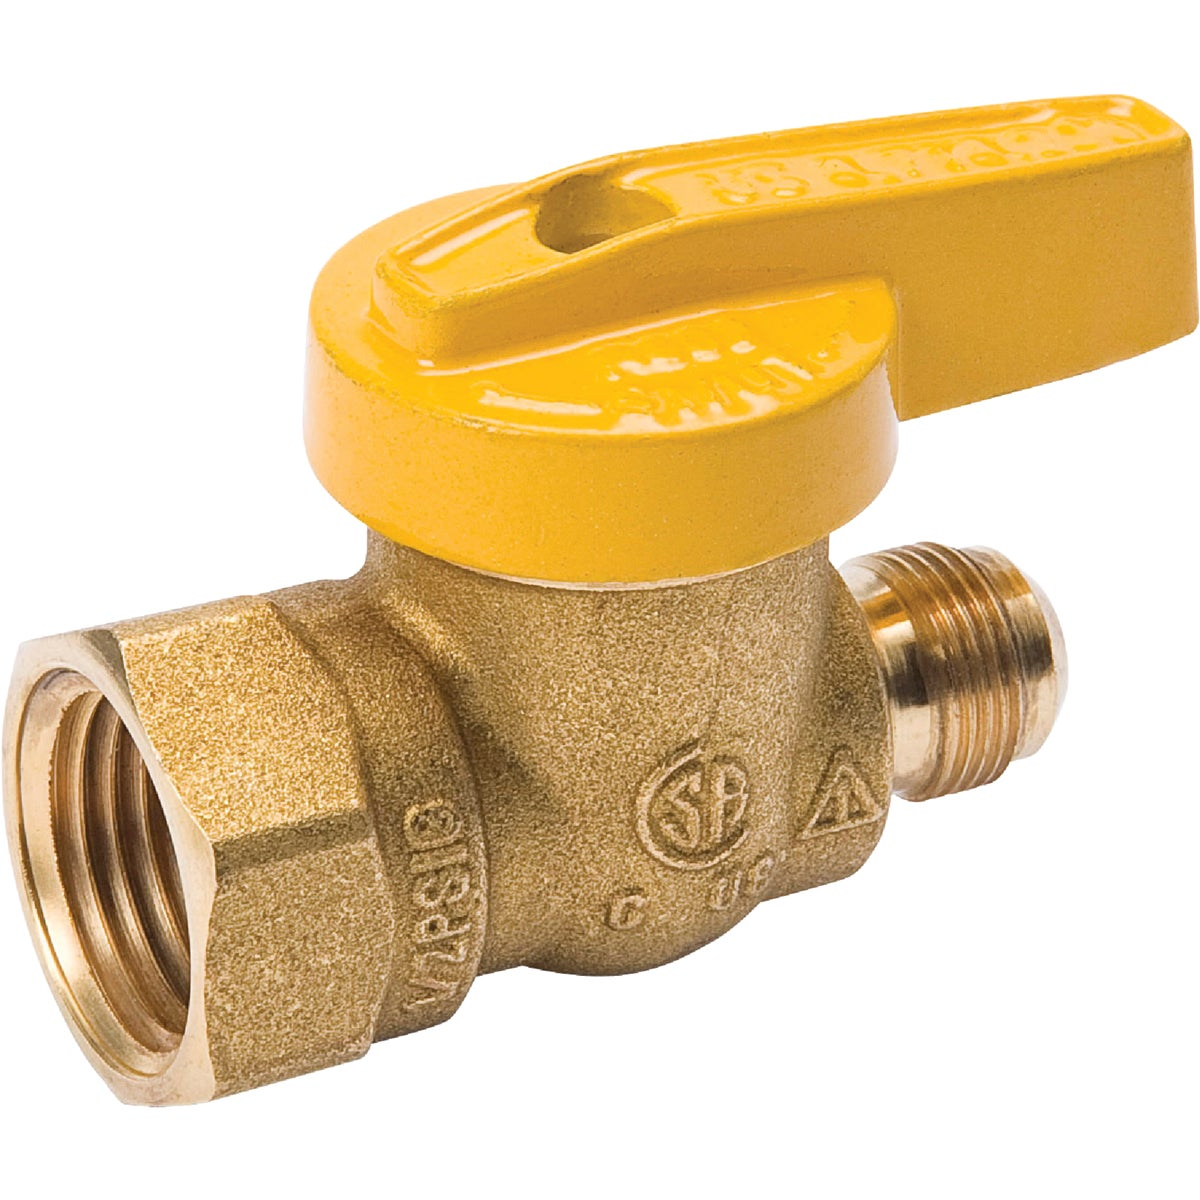 GAS HEATER VALVE - 117-592 by Mueller B K